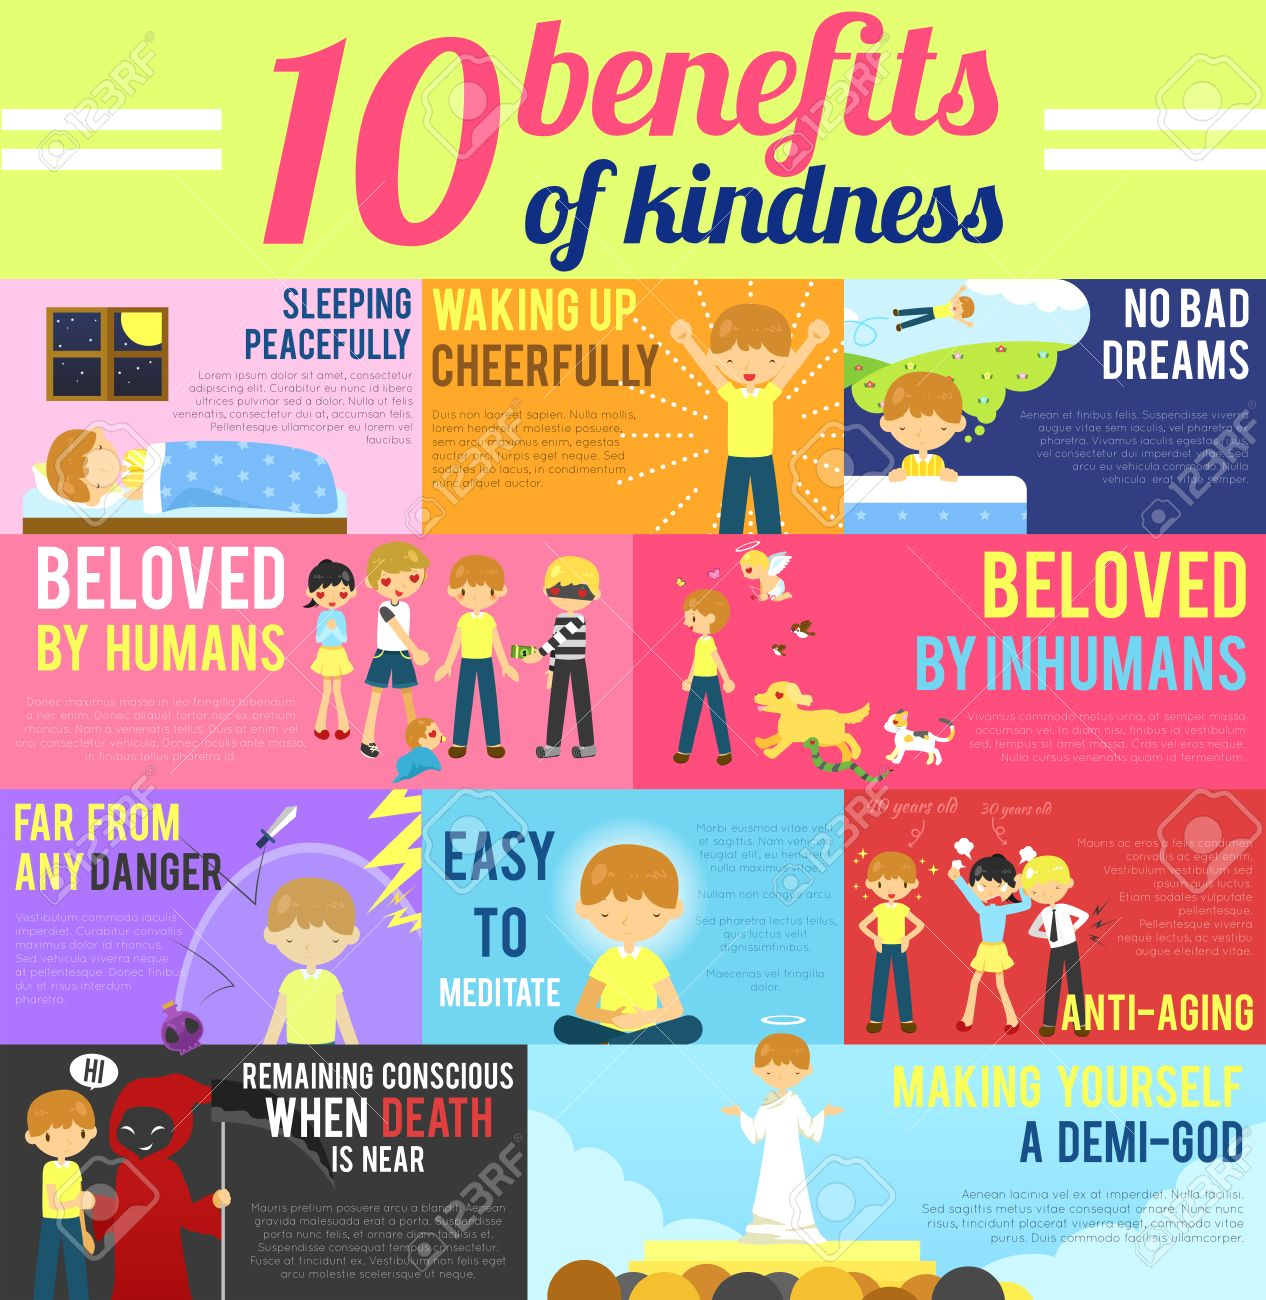 10 benefits advantage of love and kindness in cute cartoon infographic banner template layout background design for self-improvement education, religion, and morality purpose, create by vector - 45153232